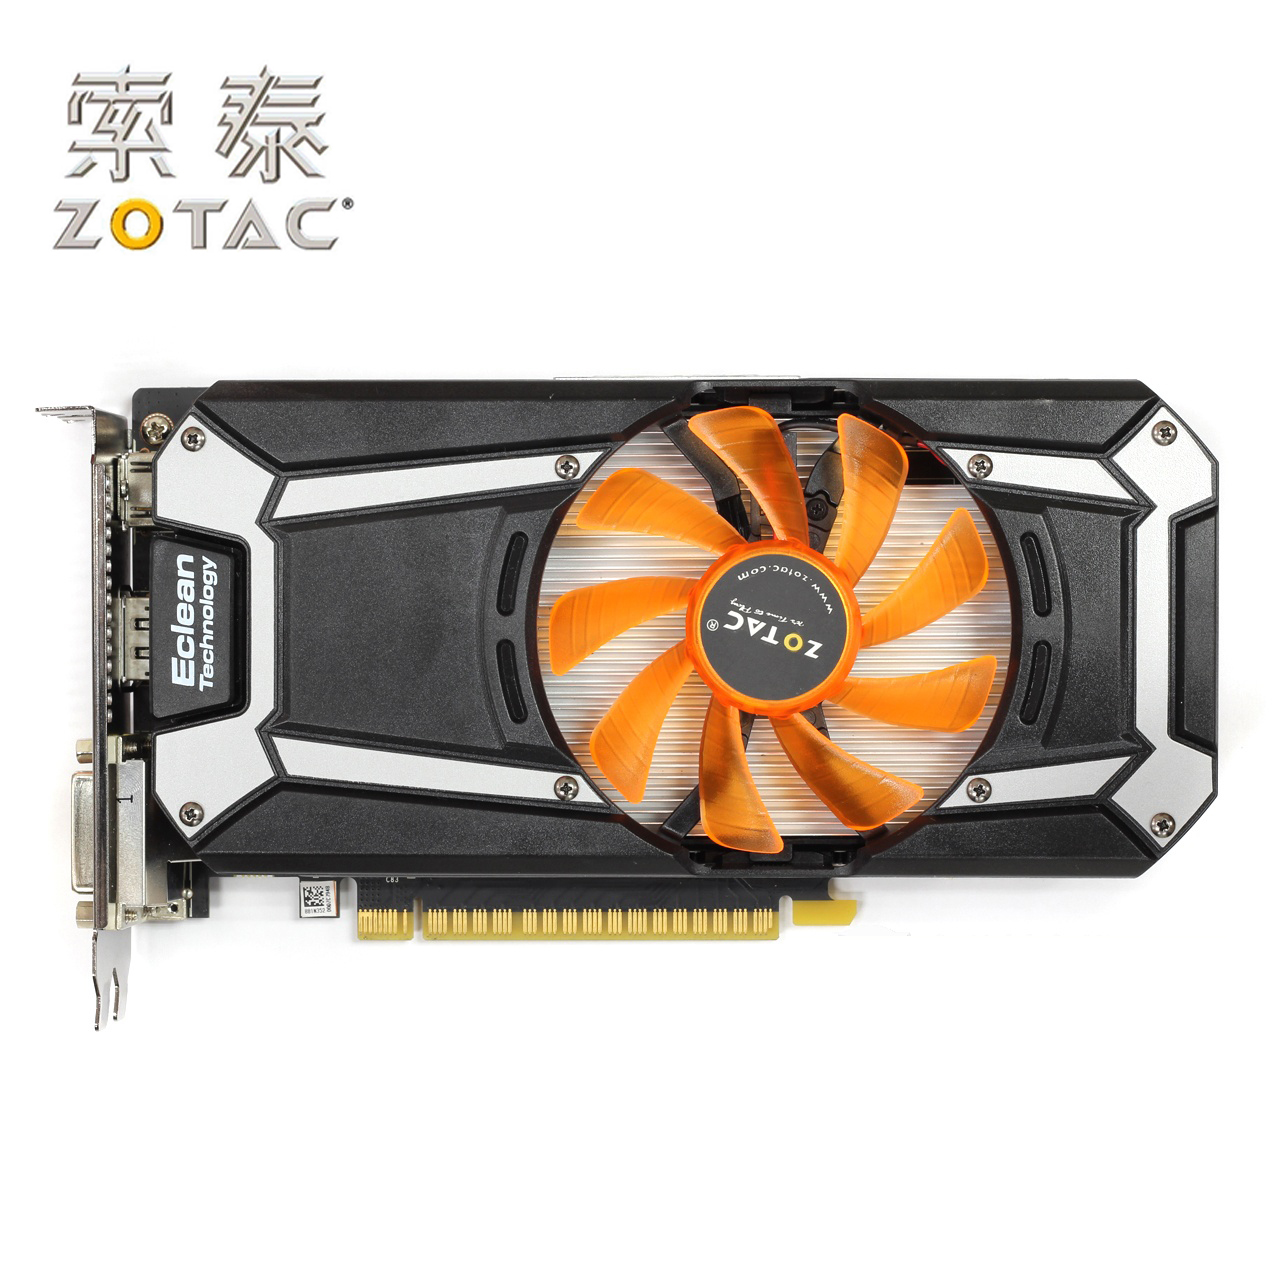 Original ZOTAC GeForce GTX 750Ti-1GD5 Graphics Card Thunder HA For NVIDIA GTX750 GT700 1GD5 1G Video Cards 6000MHz GDDR5 Used